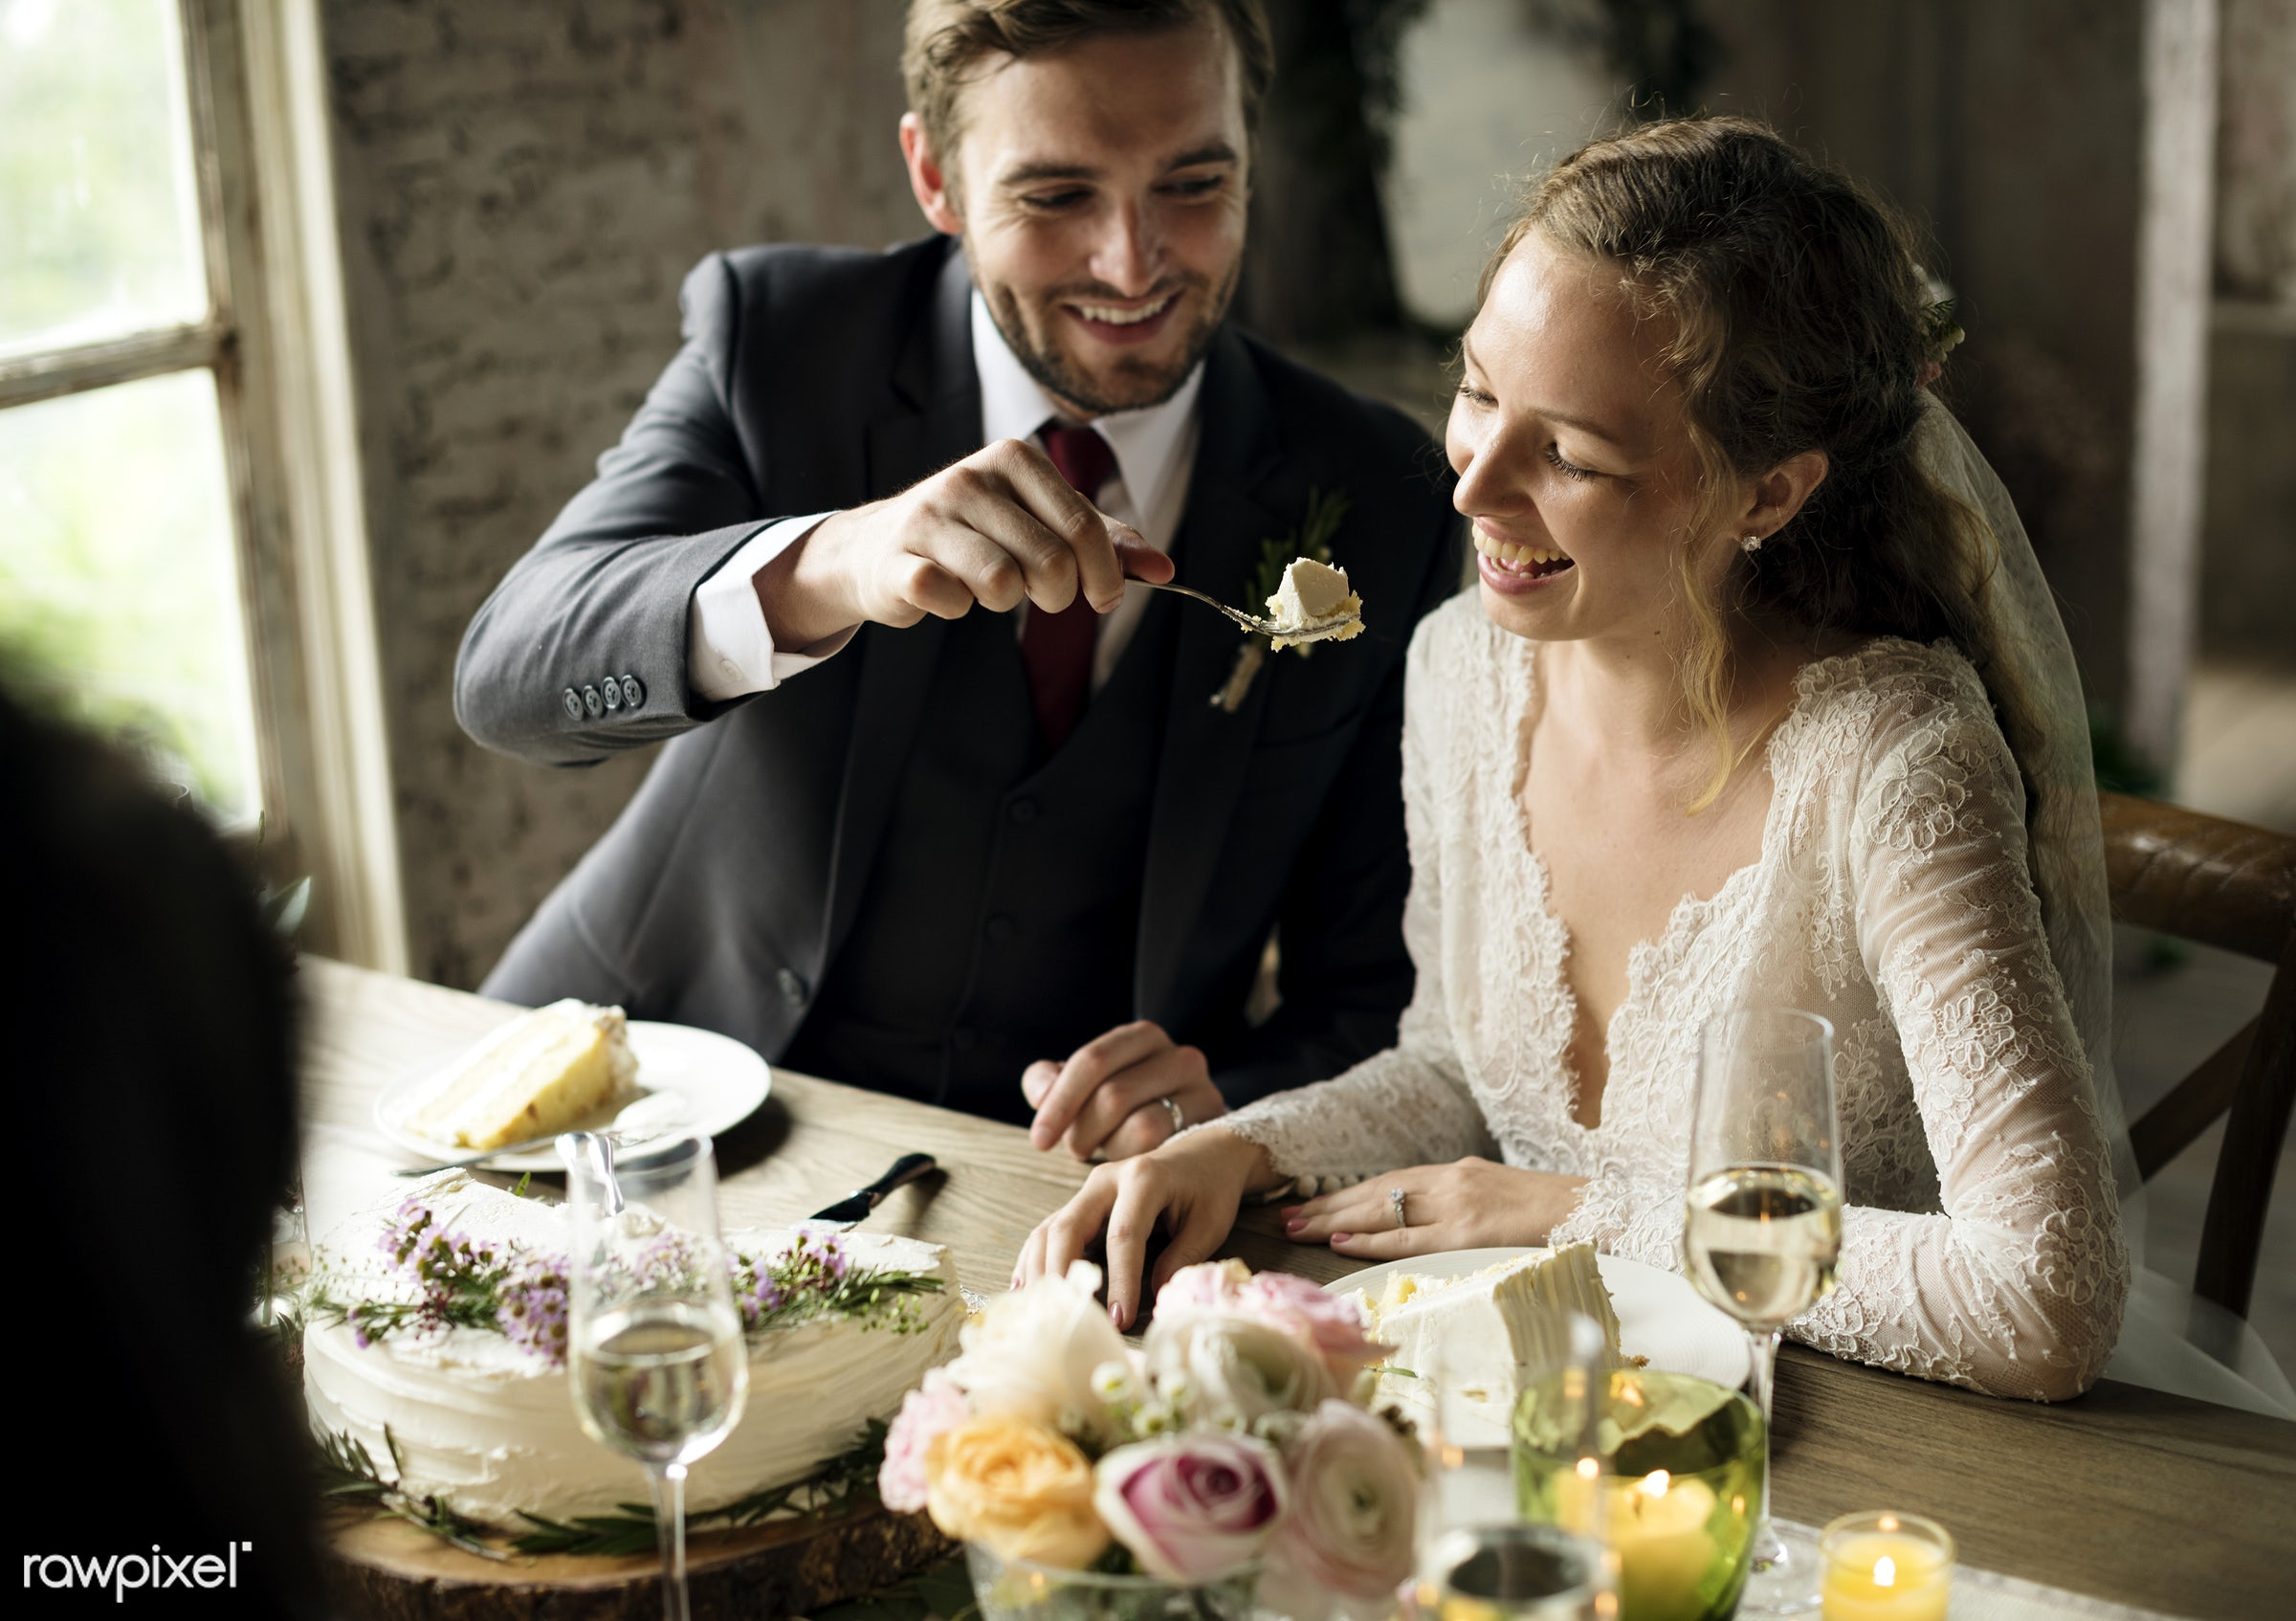 person, bonding, husband, people, love, sharing, event, woman, feed, couple, soulmate, bride, cheerful, smiling, man, marry...